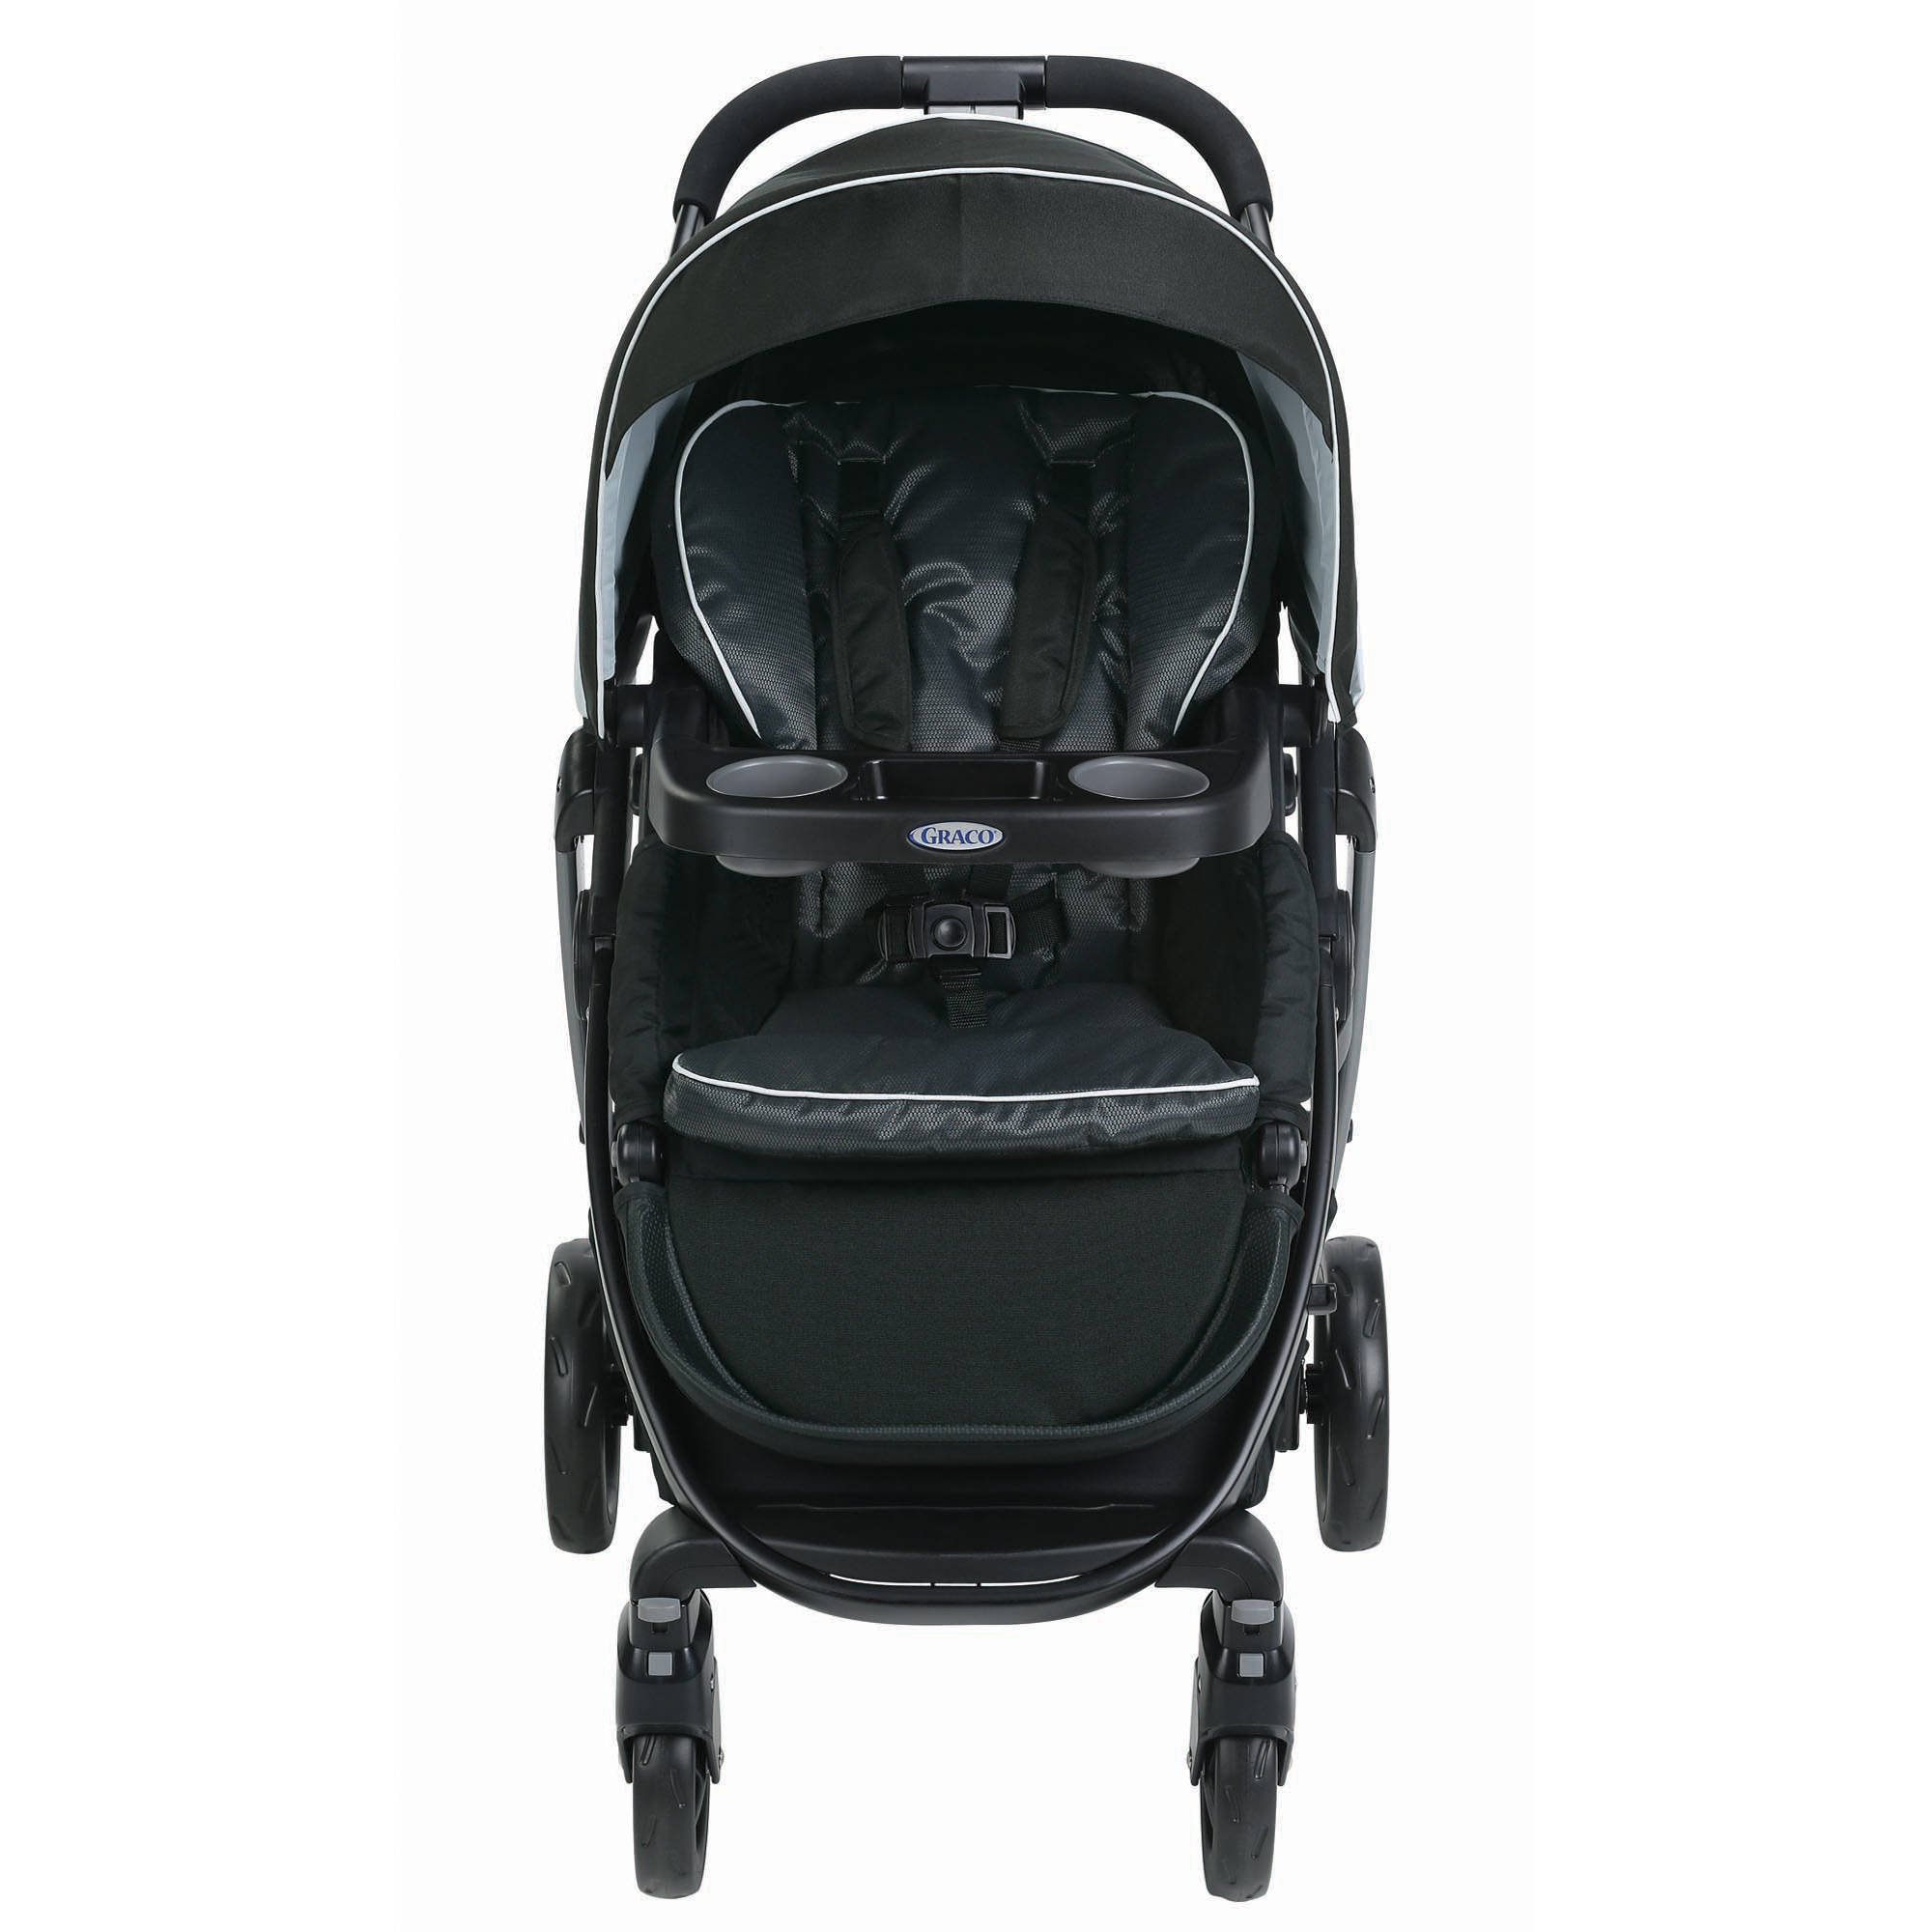 Graco Modes Click Connect Convertible Stroller, Gotham